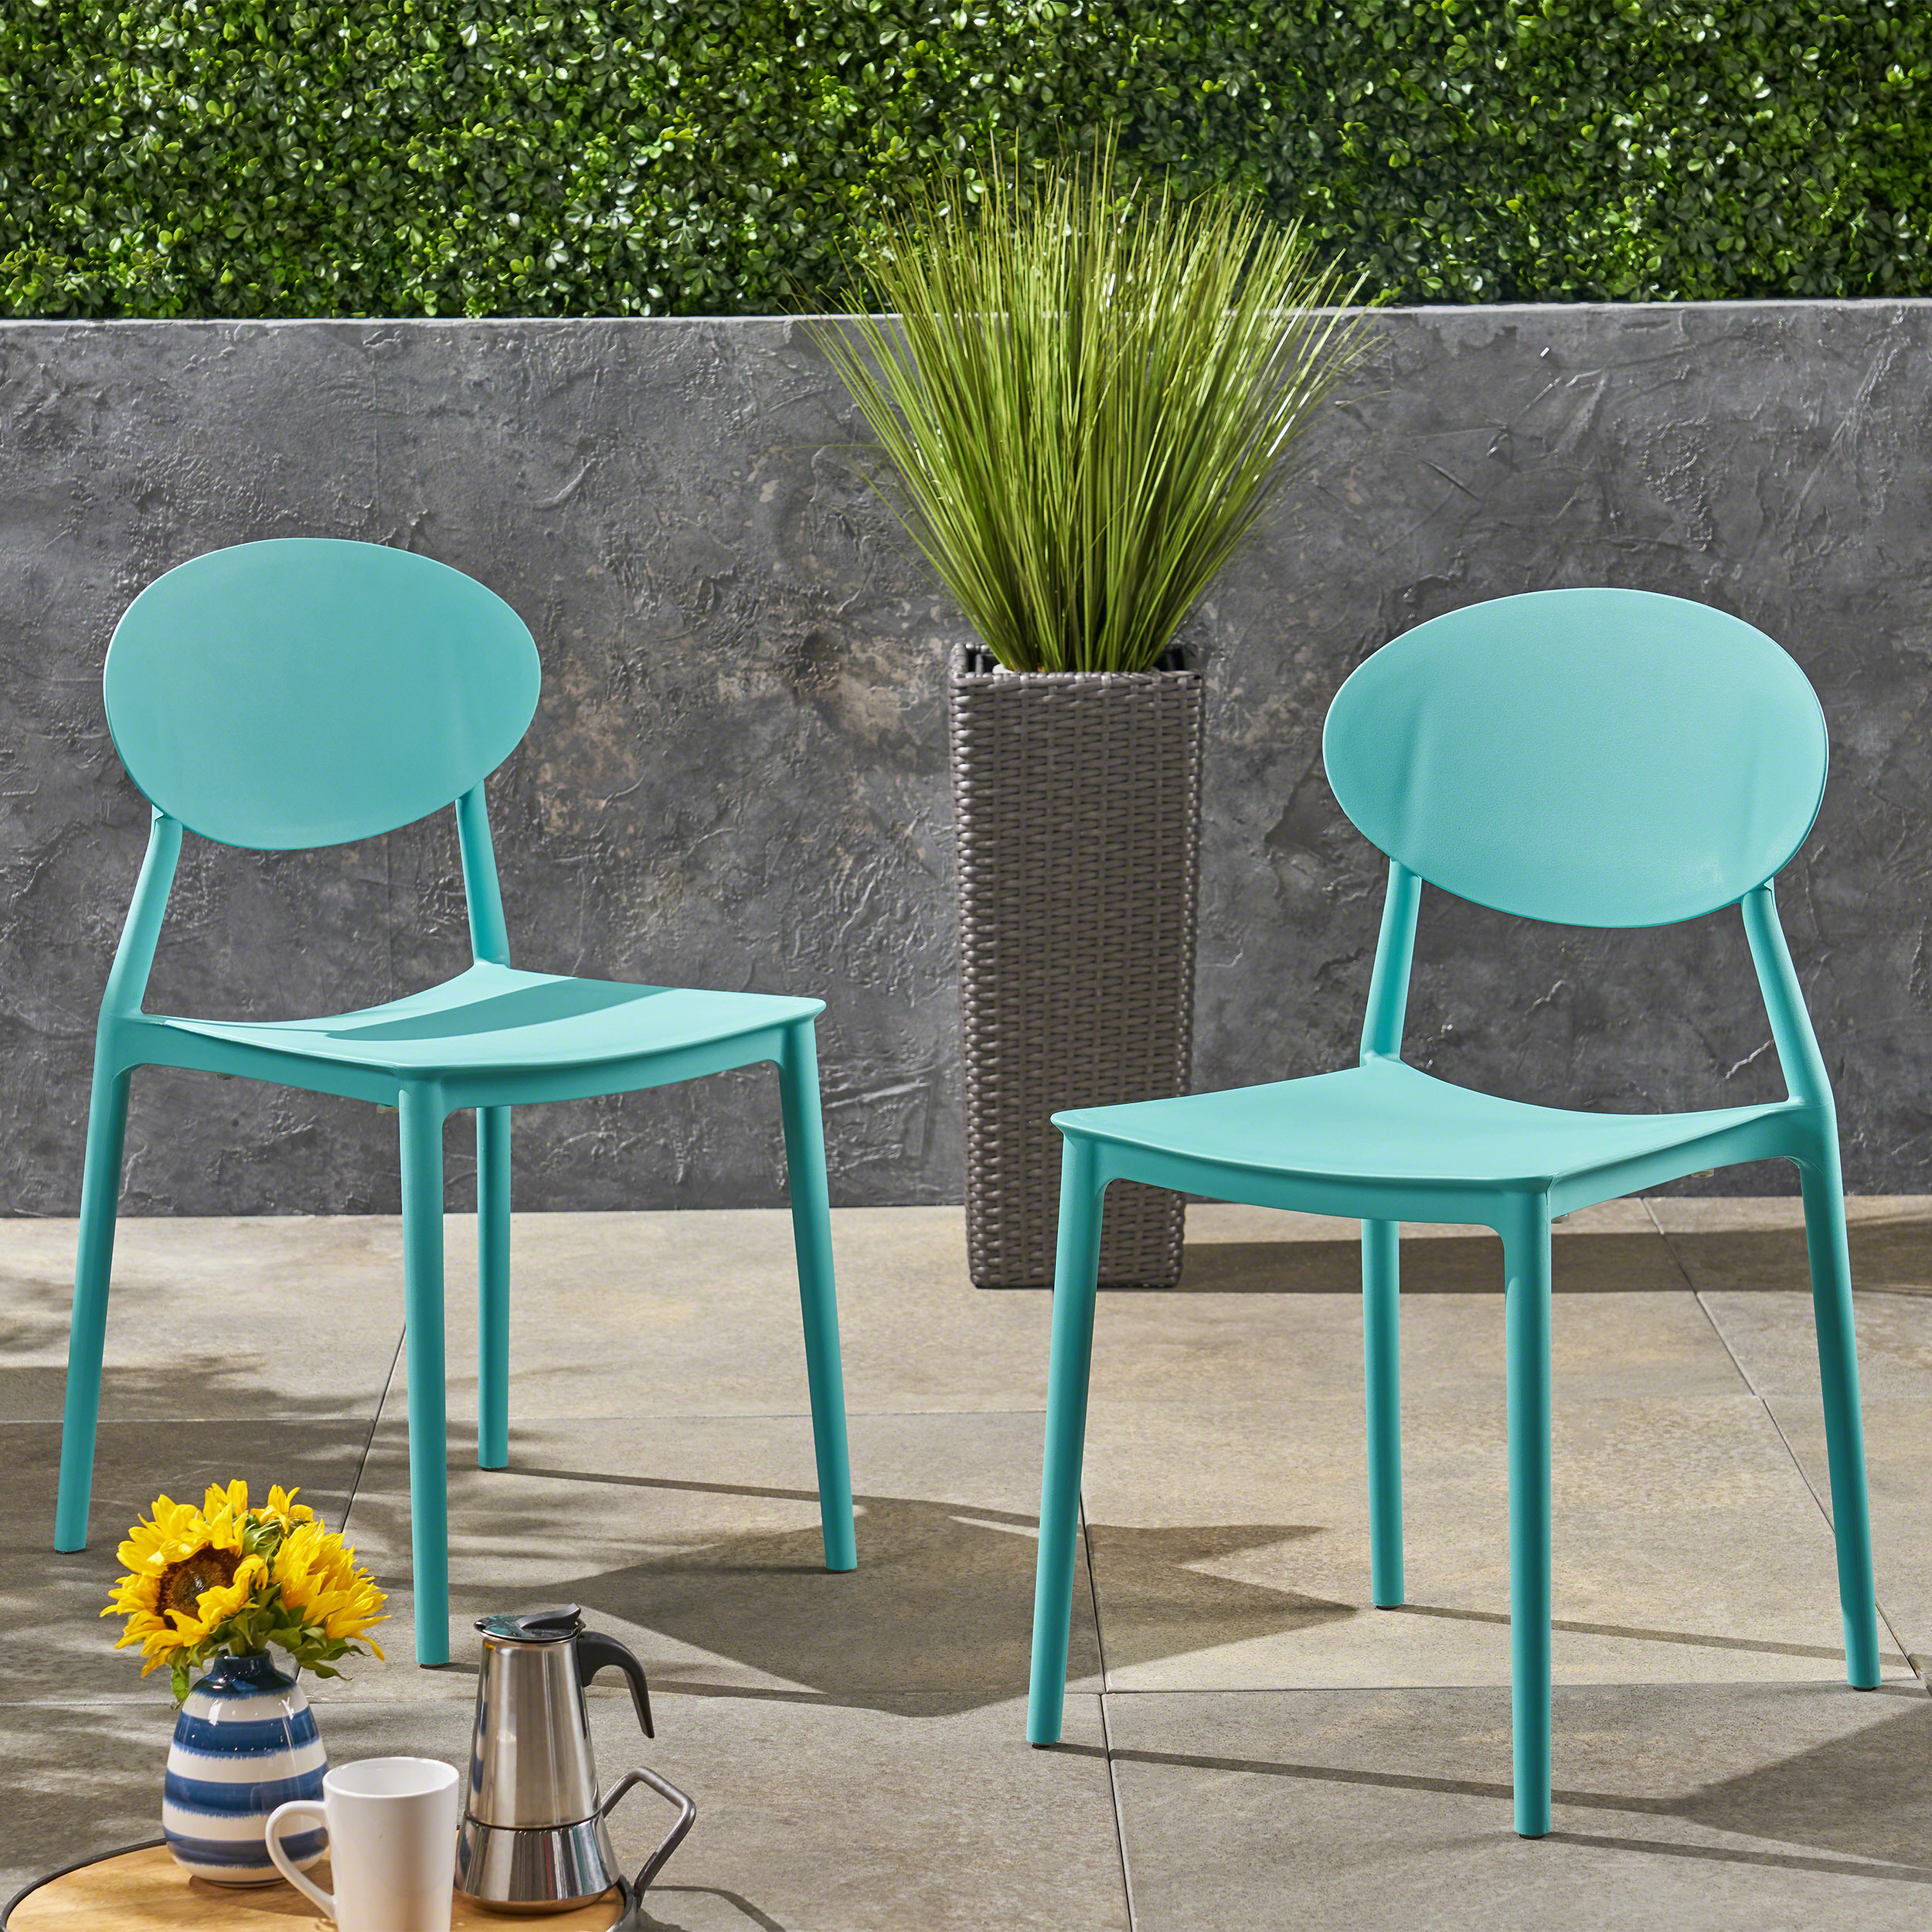 landry outdoor plastic chairs set of 2 teal